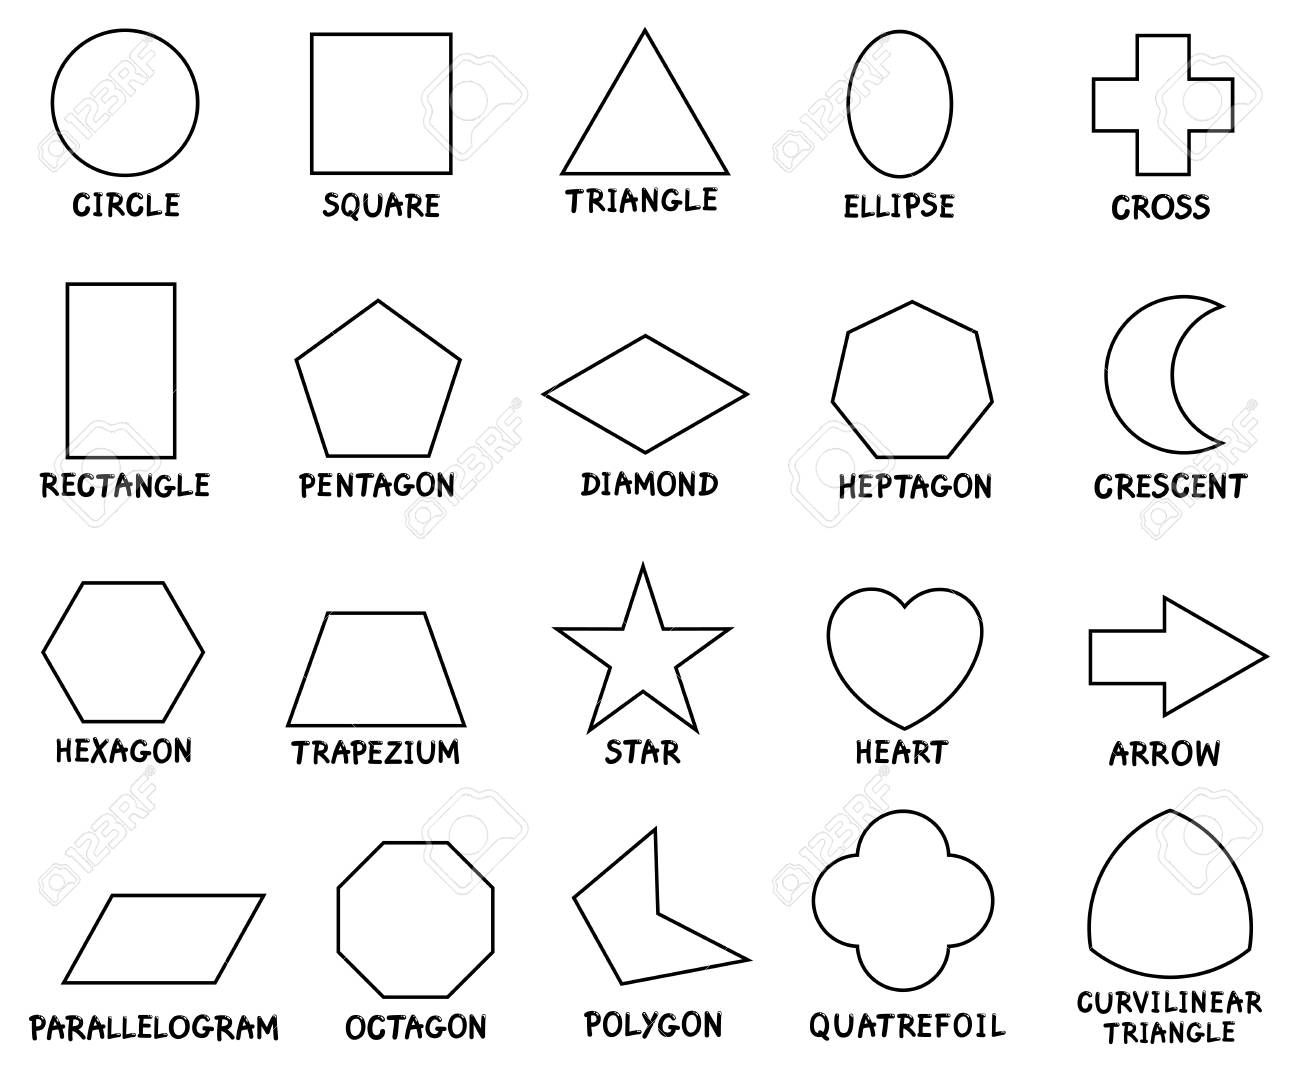 b529e1f0797 Black and White Cartoon Illustration of Educational Basic Geometric Shapes  with Captions for Preschool or Elementary